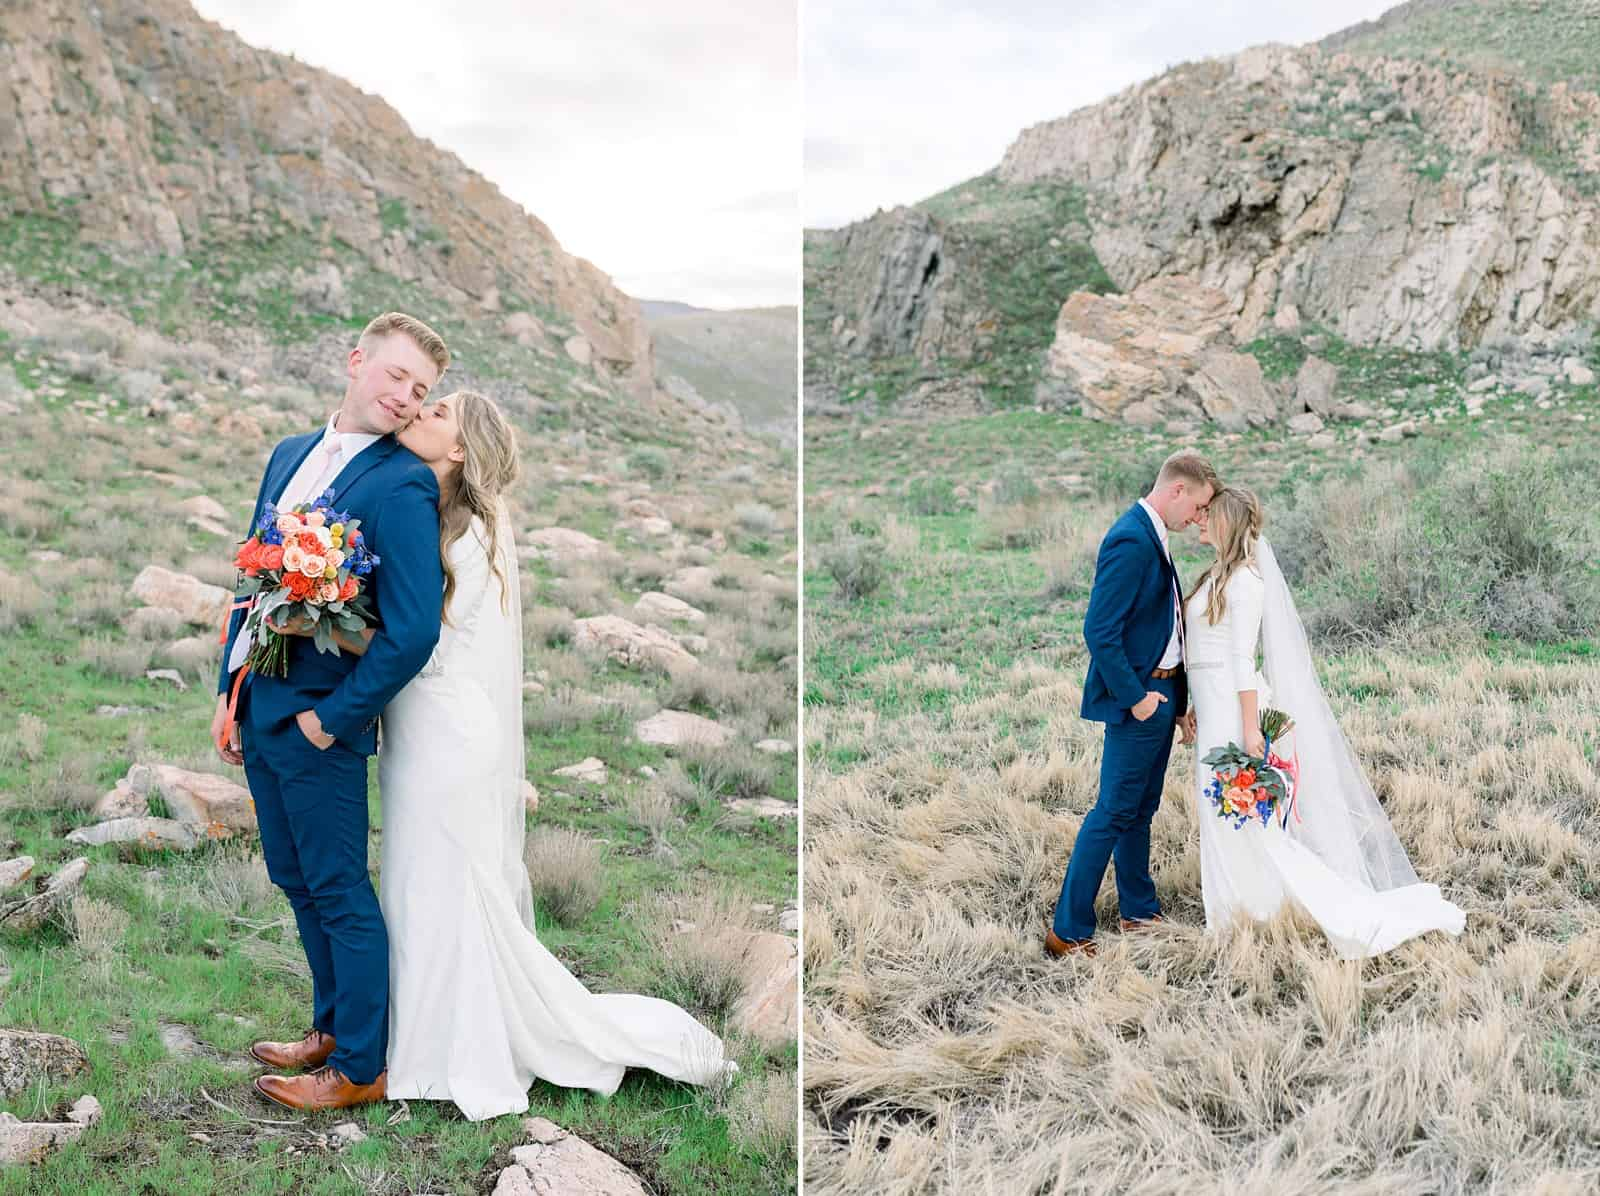 Ireland field, bride and groom, Utah mountains, nature wedding photography, spring wedding